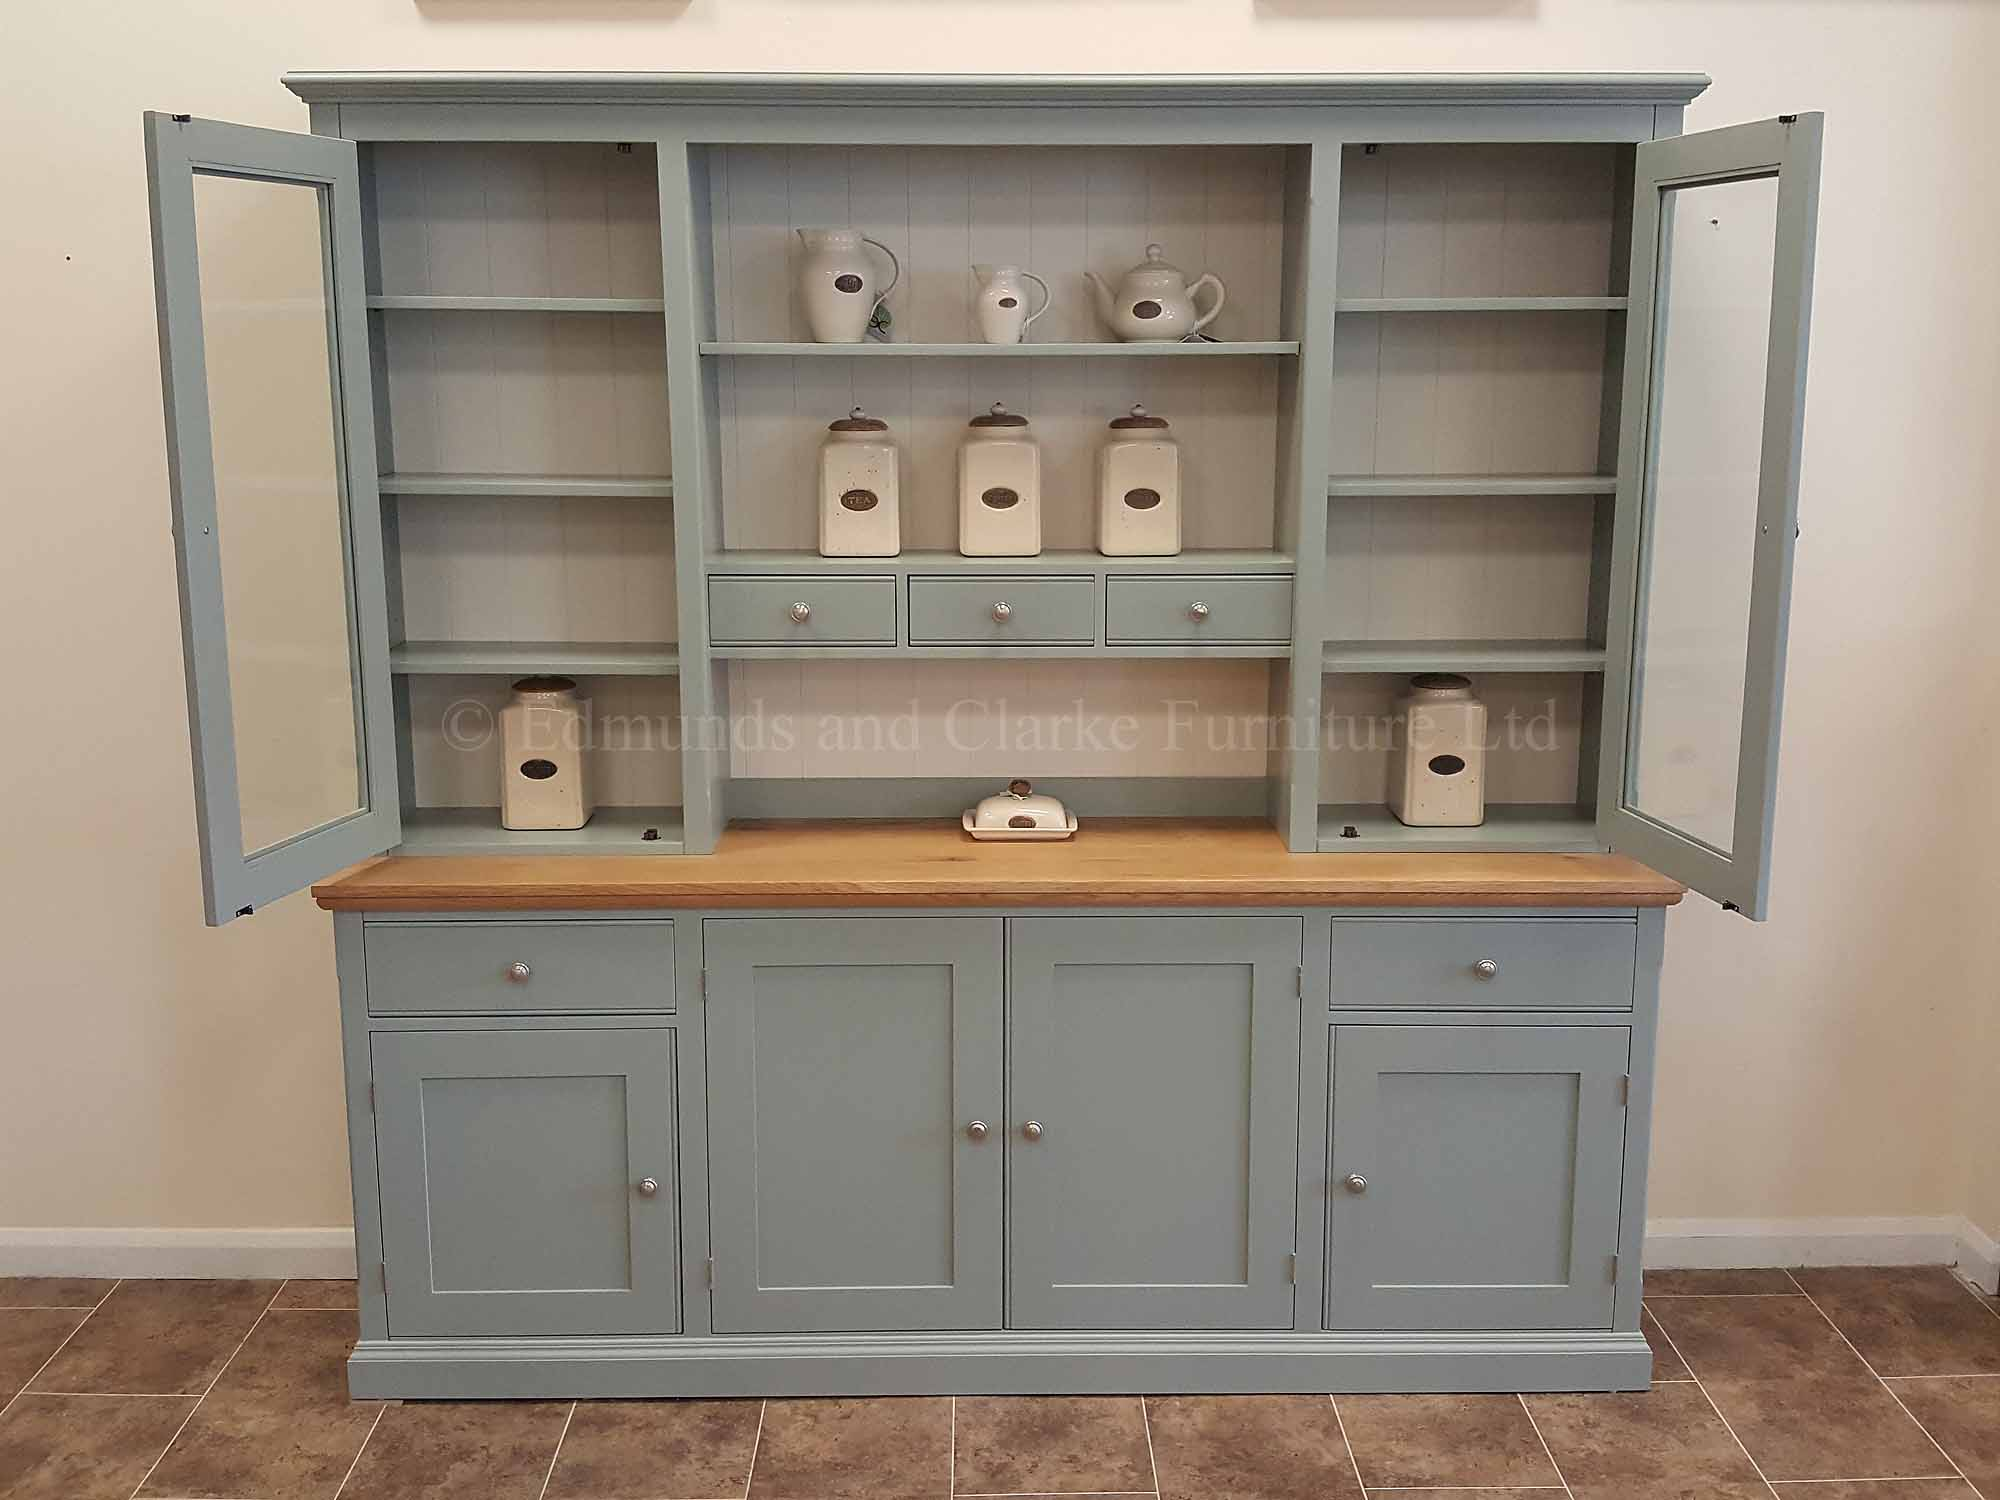 Painted wide seven foot kitchen dresser, with doors and drawers